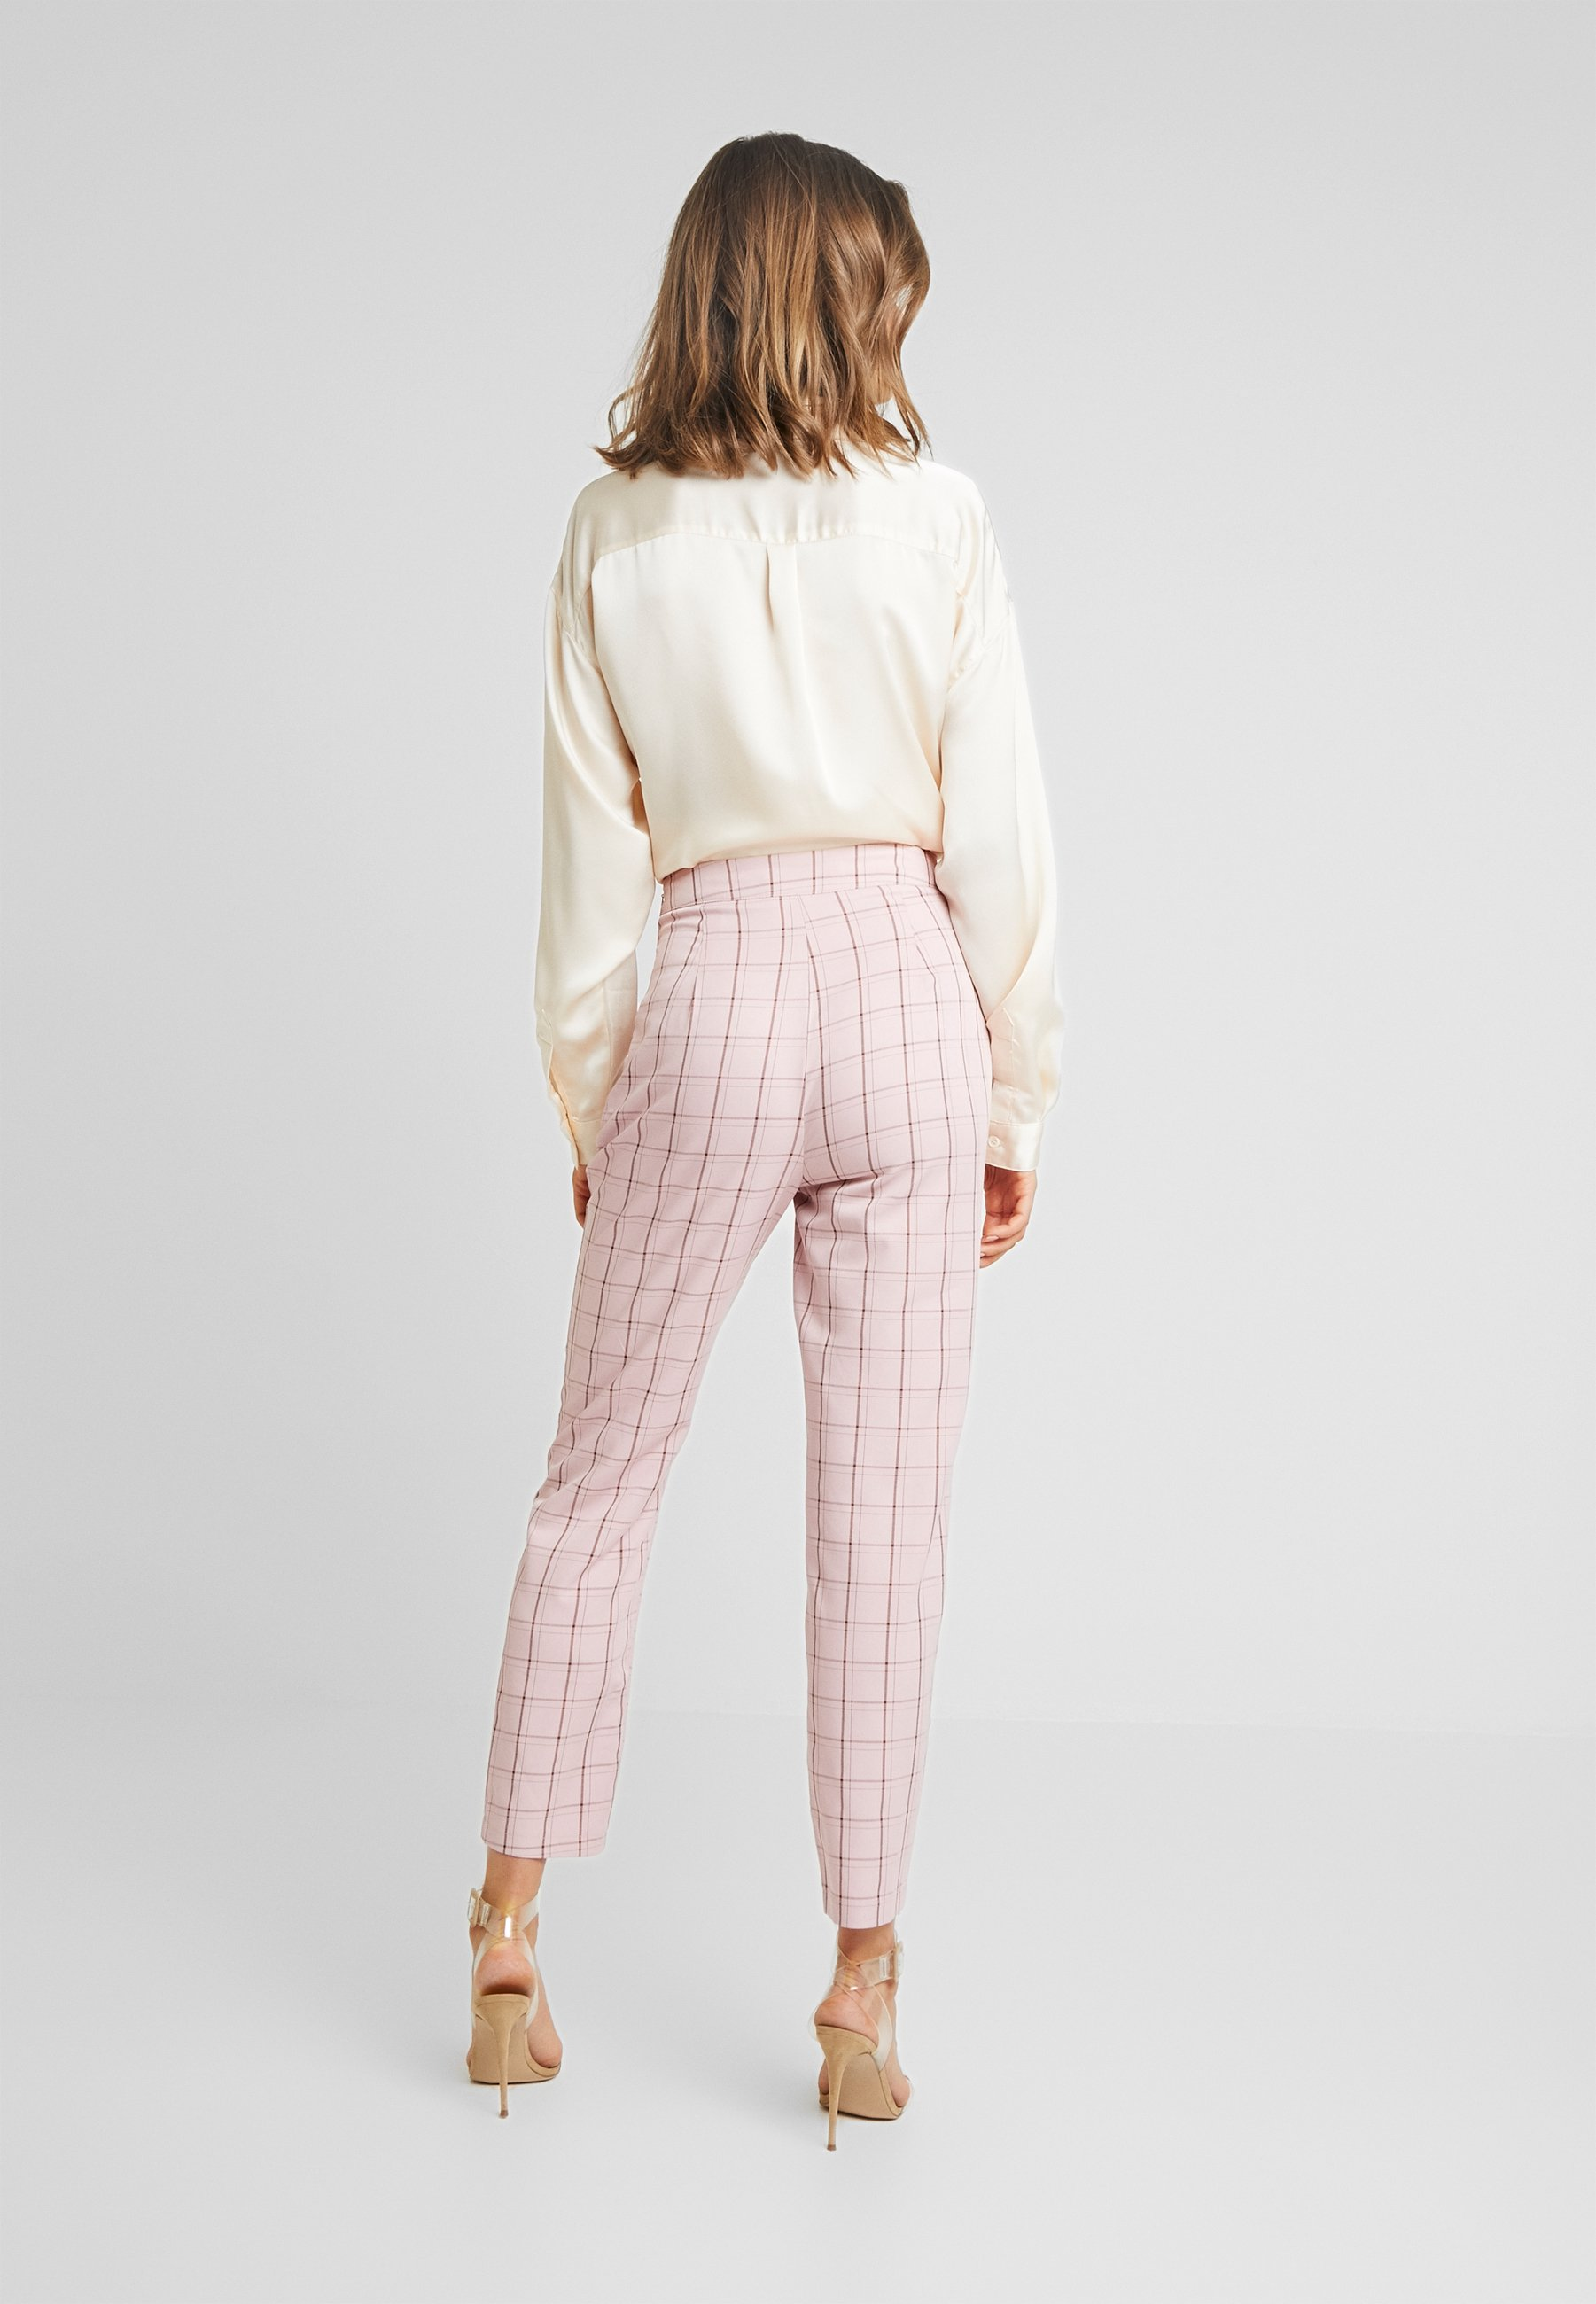 TrouserPantalon Pink Missguided Classique Cigarette Check 1cTKlFJ